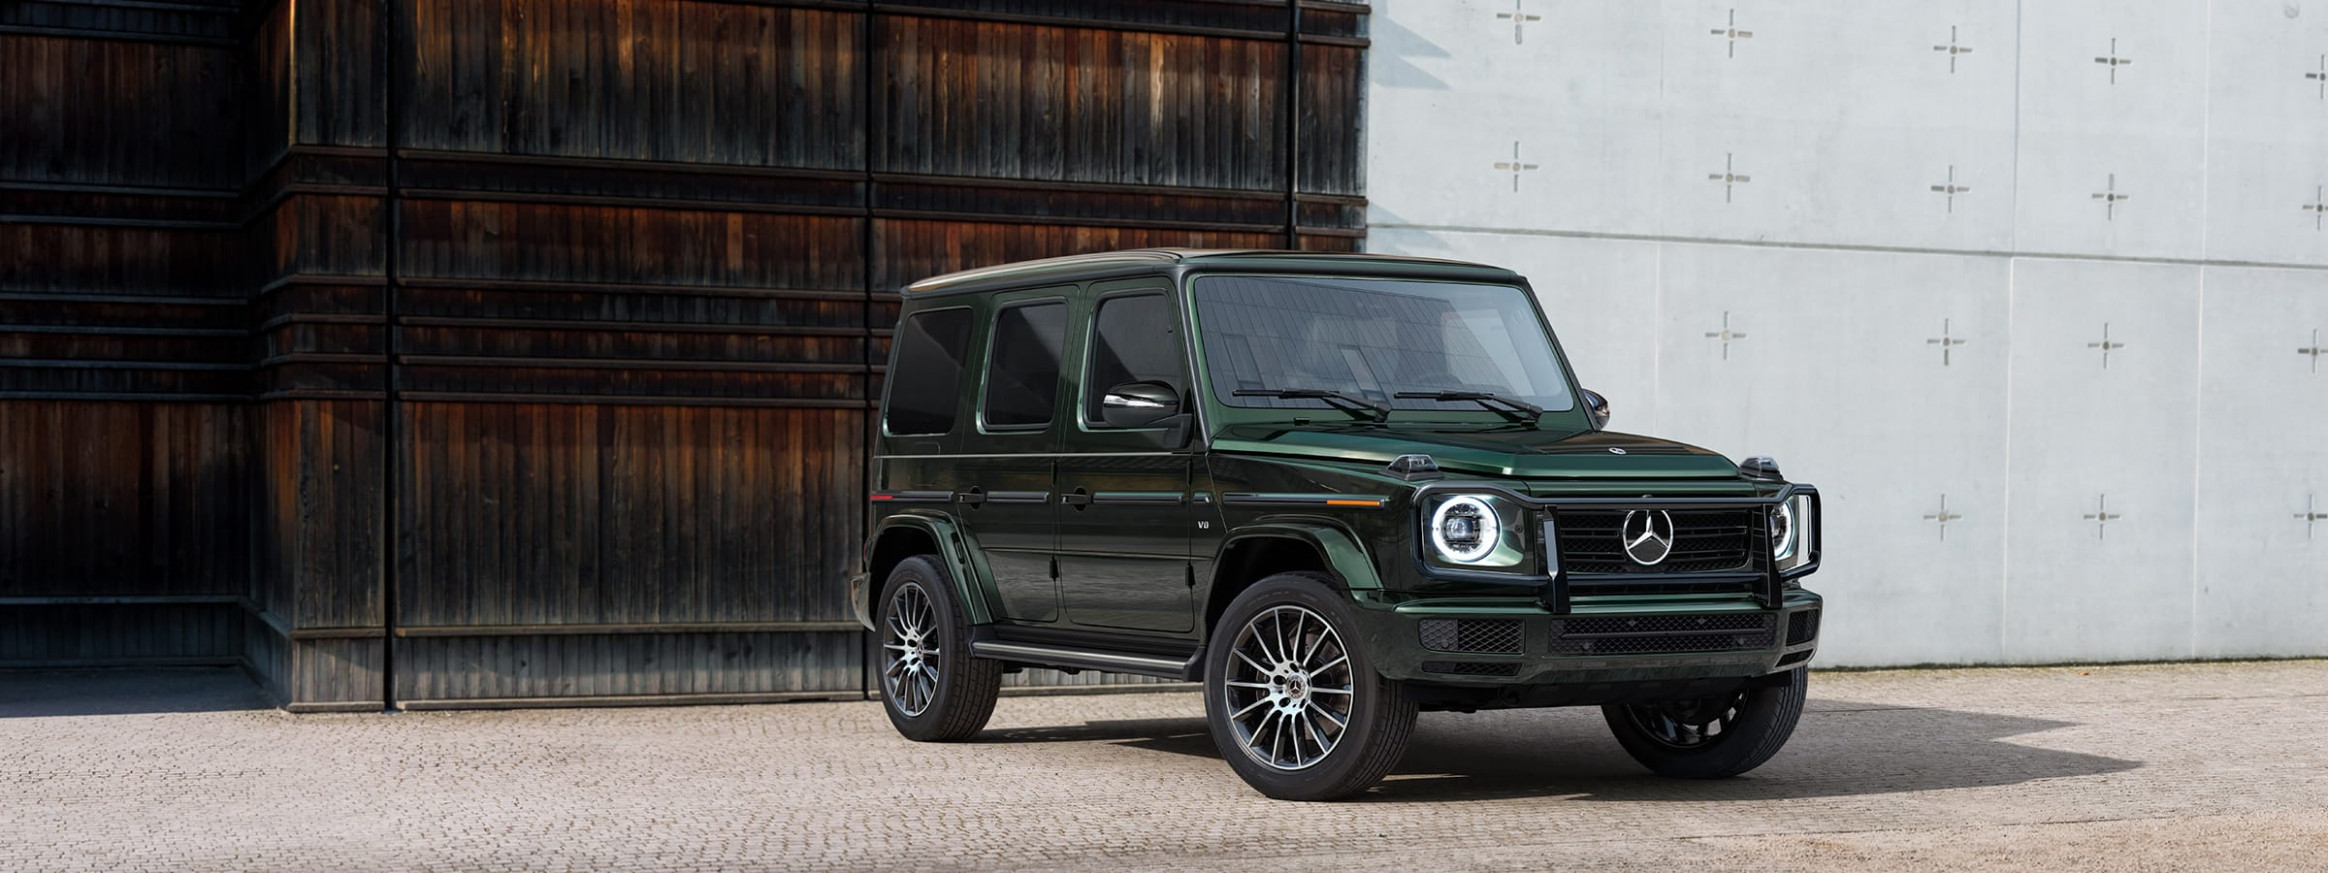 G-Class Luxury Off-Road SUV - mercedes g wagon 2020